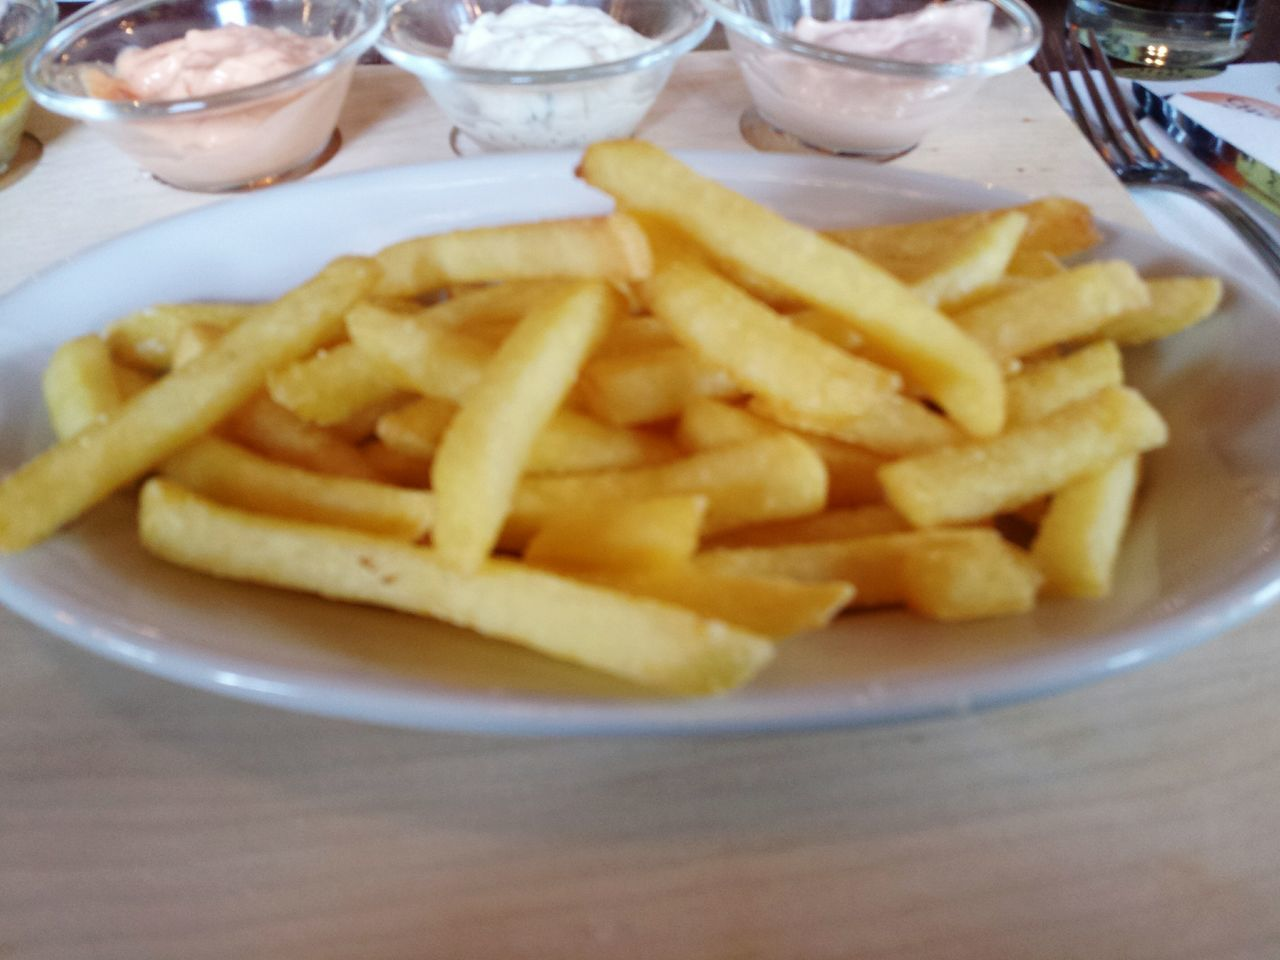 french fries, food and drink, prepared potato, food, unhealthy eating, still life, table, no people, freshness, plate, indoors, close-up, ready-to-eat, deep fried, dip, fast food, day